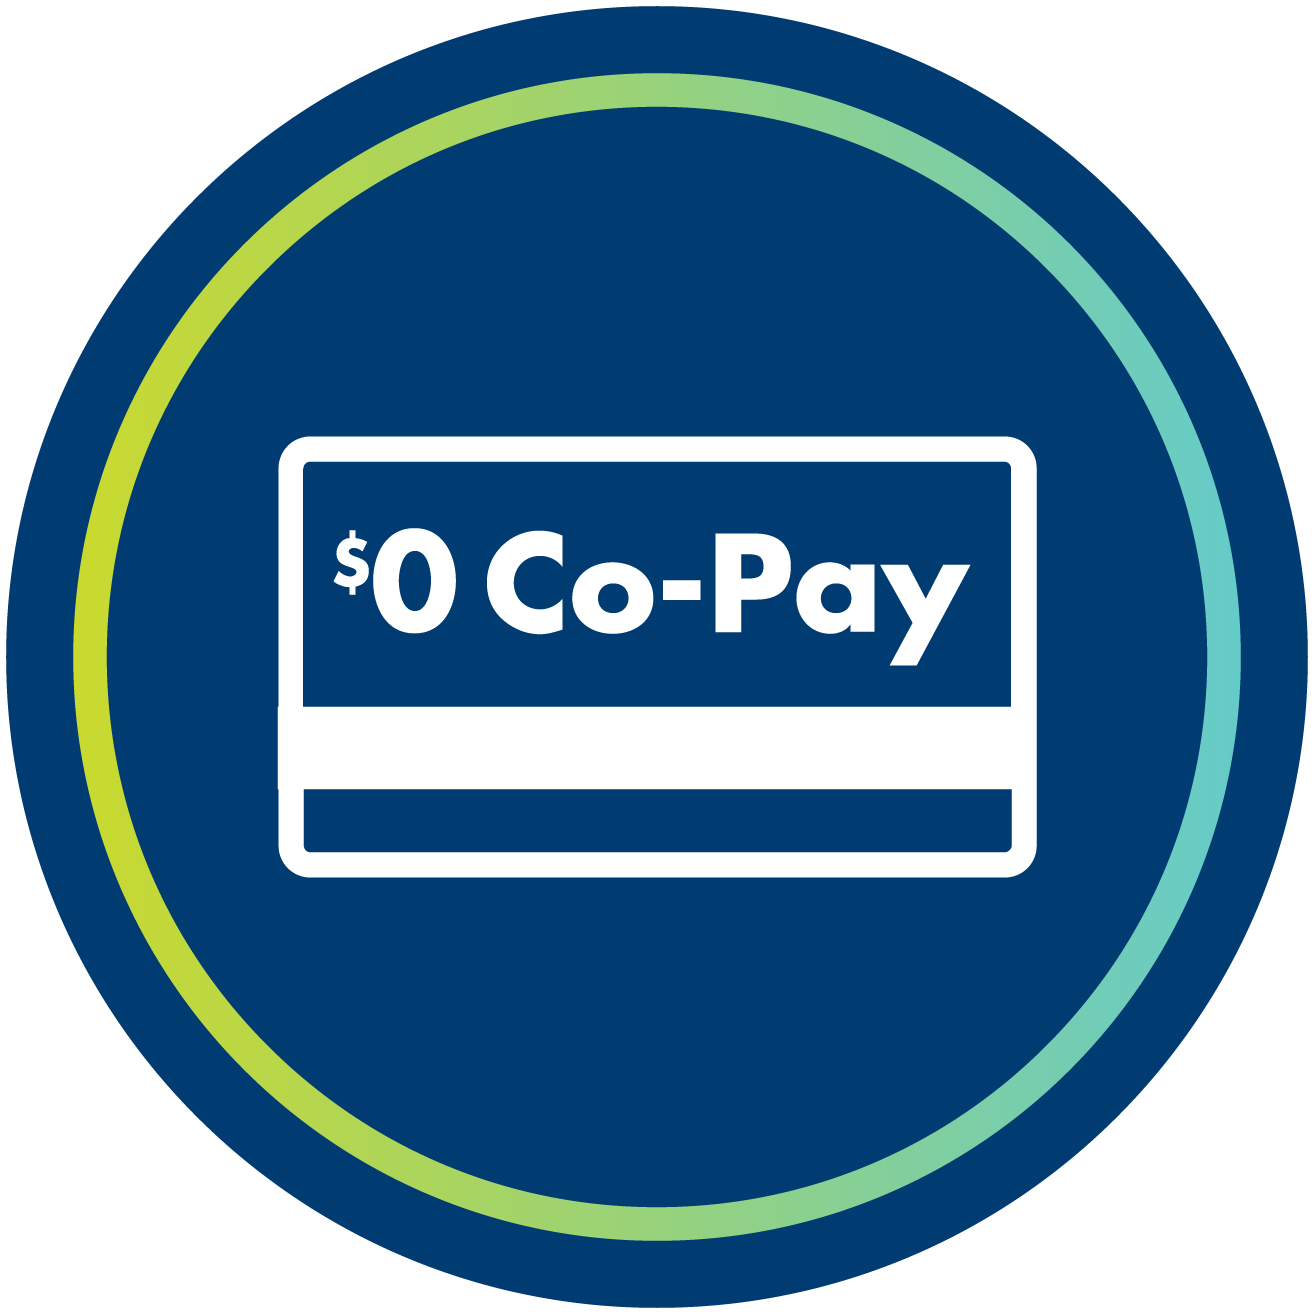 $0 Co-Pay Icon